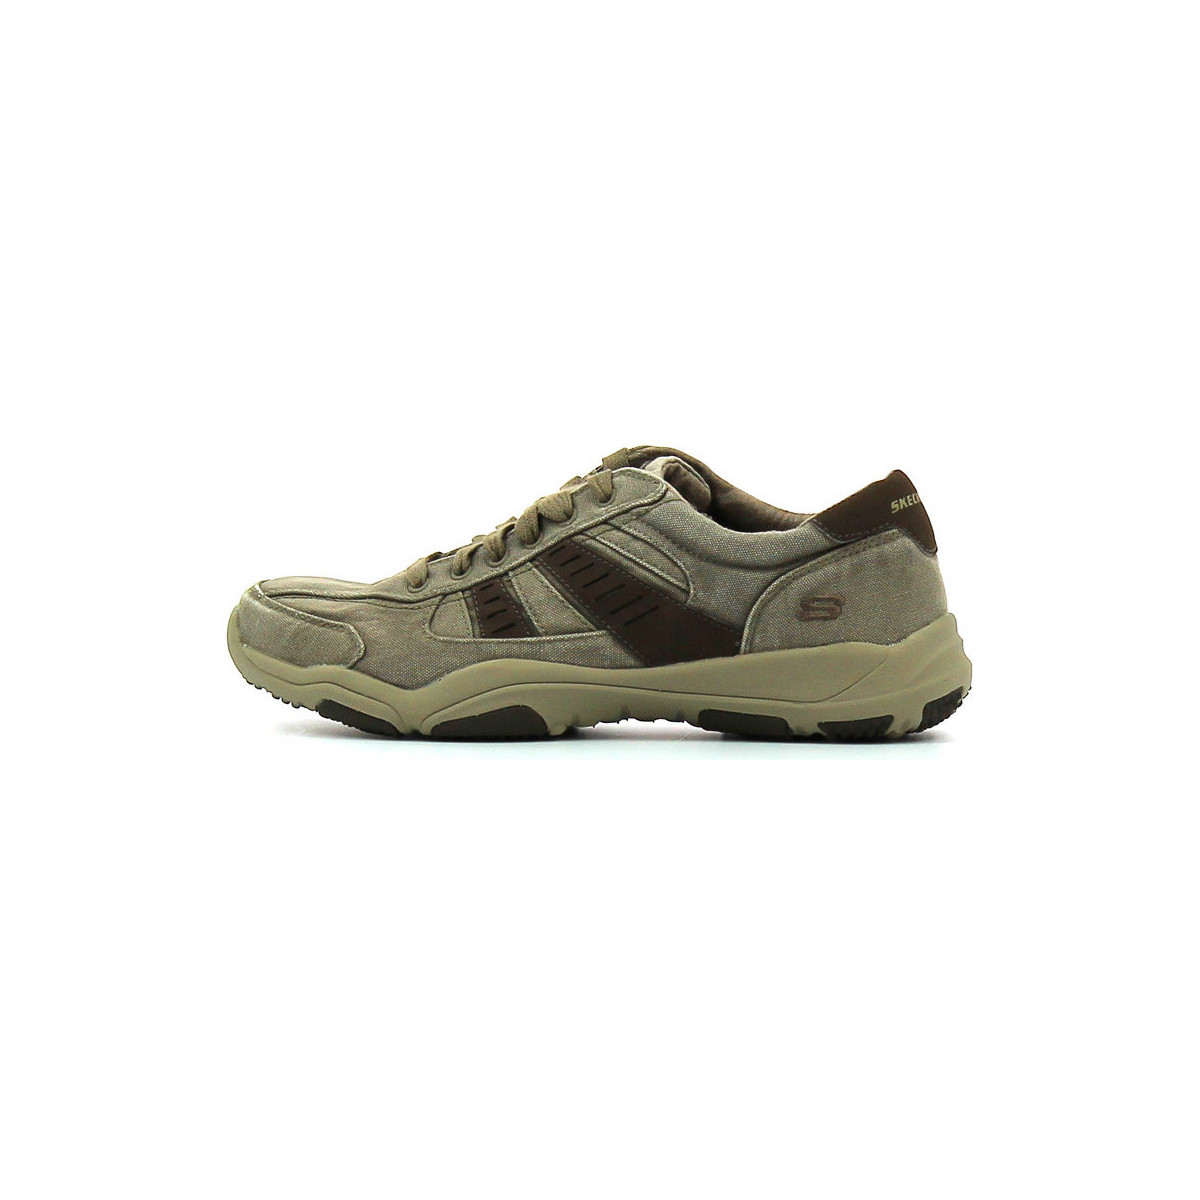 Skechers Larson Masson Taupe - Chaussures Chaussure-Ville Homme